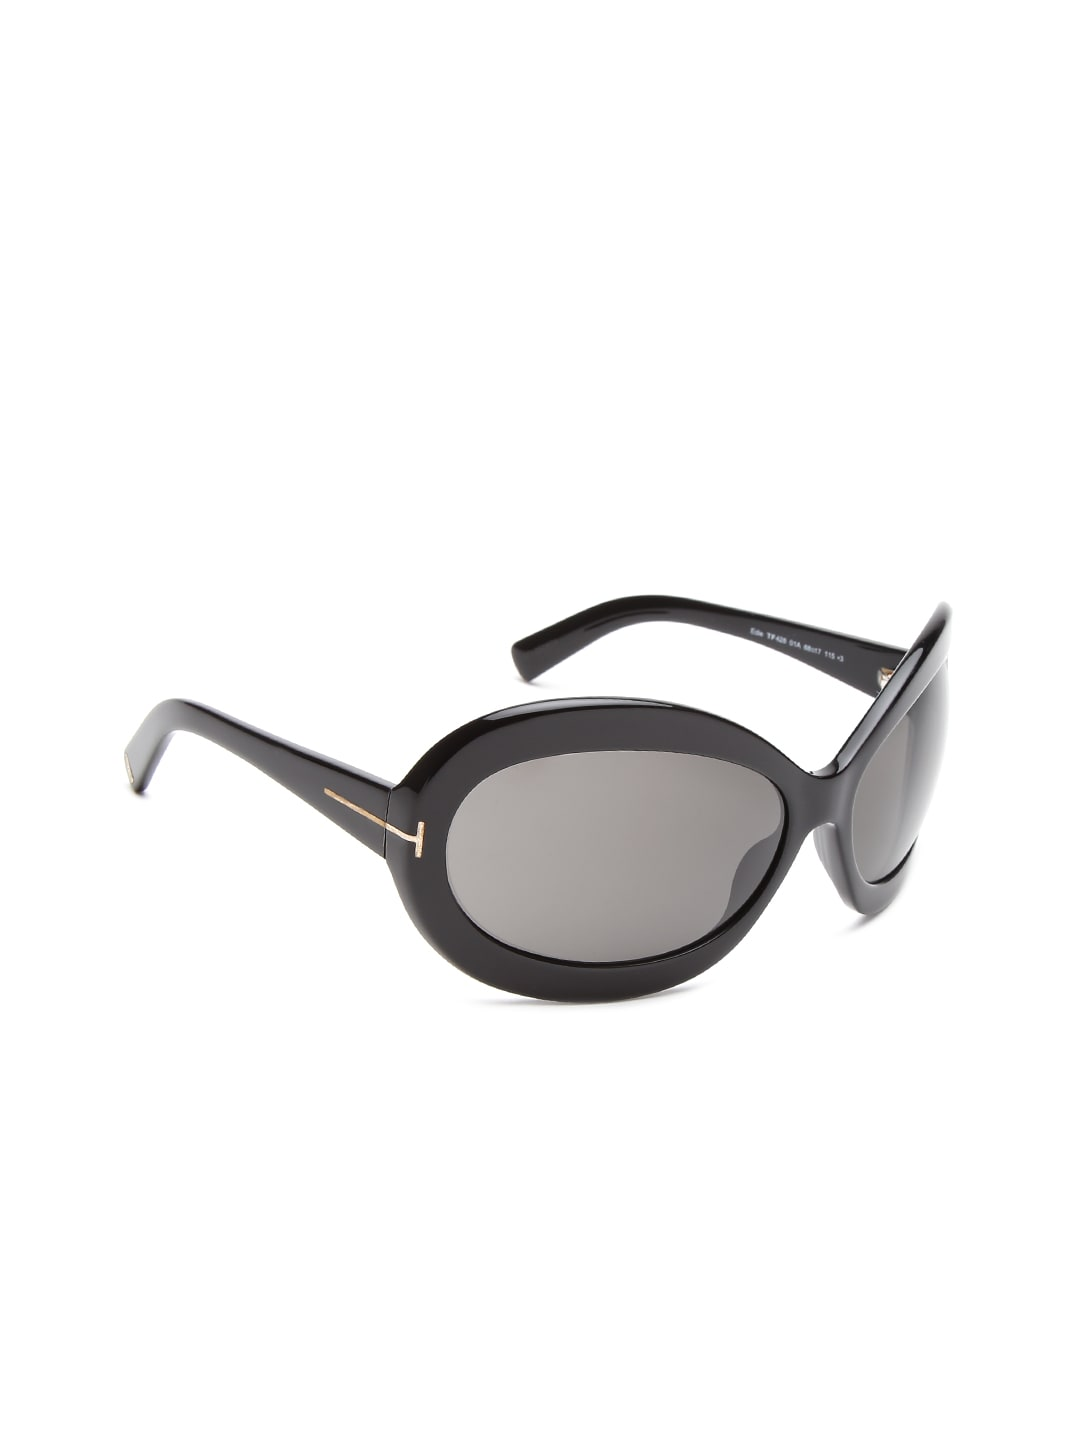 Tom Ford Women Butterfly Sunglasses EC811